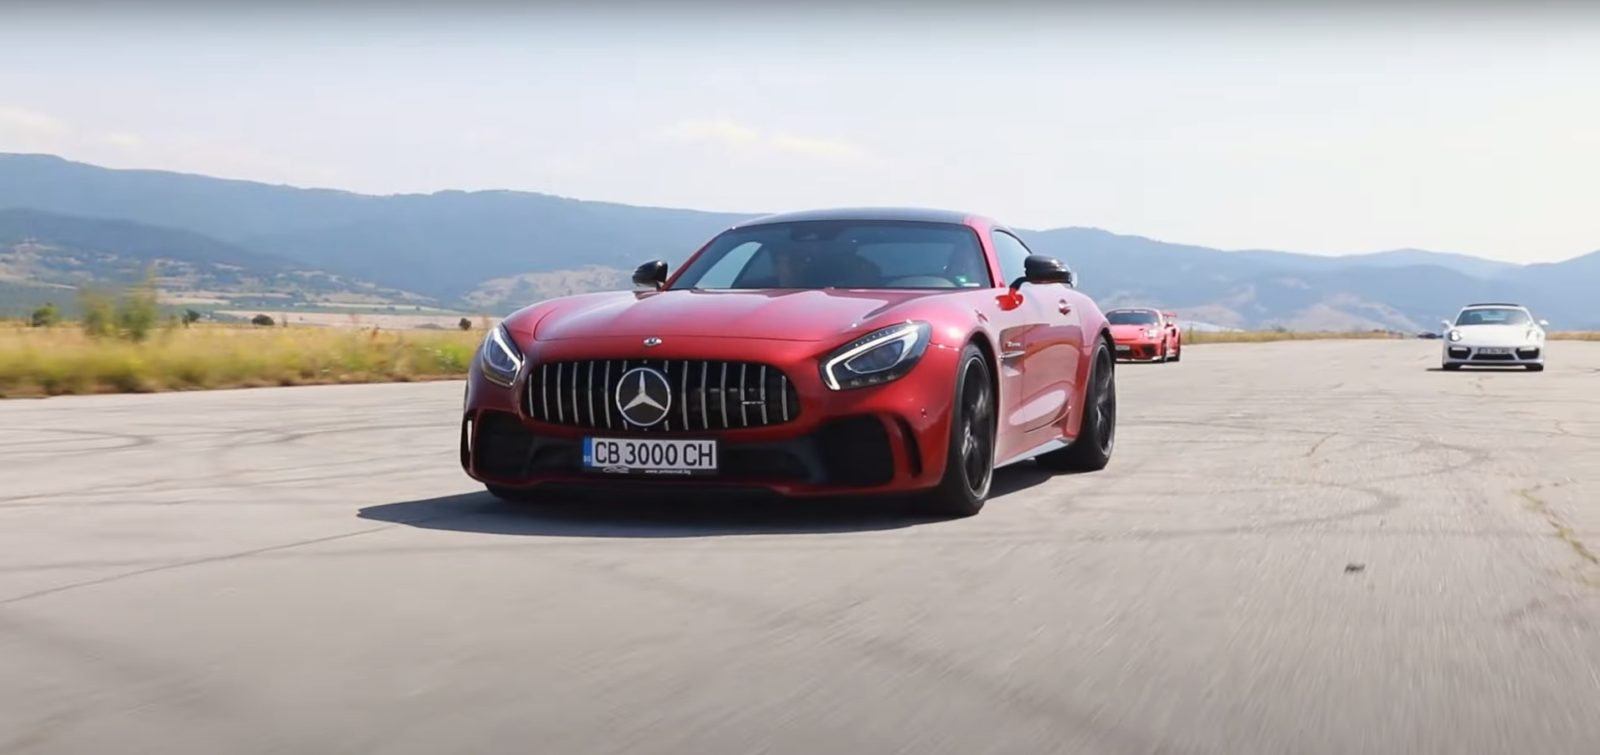 gt3-rs-and-turbo-s-porsche-911s-gang-up-on-mercedes-amg-gt-r-in-quick-drag-races